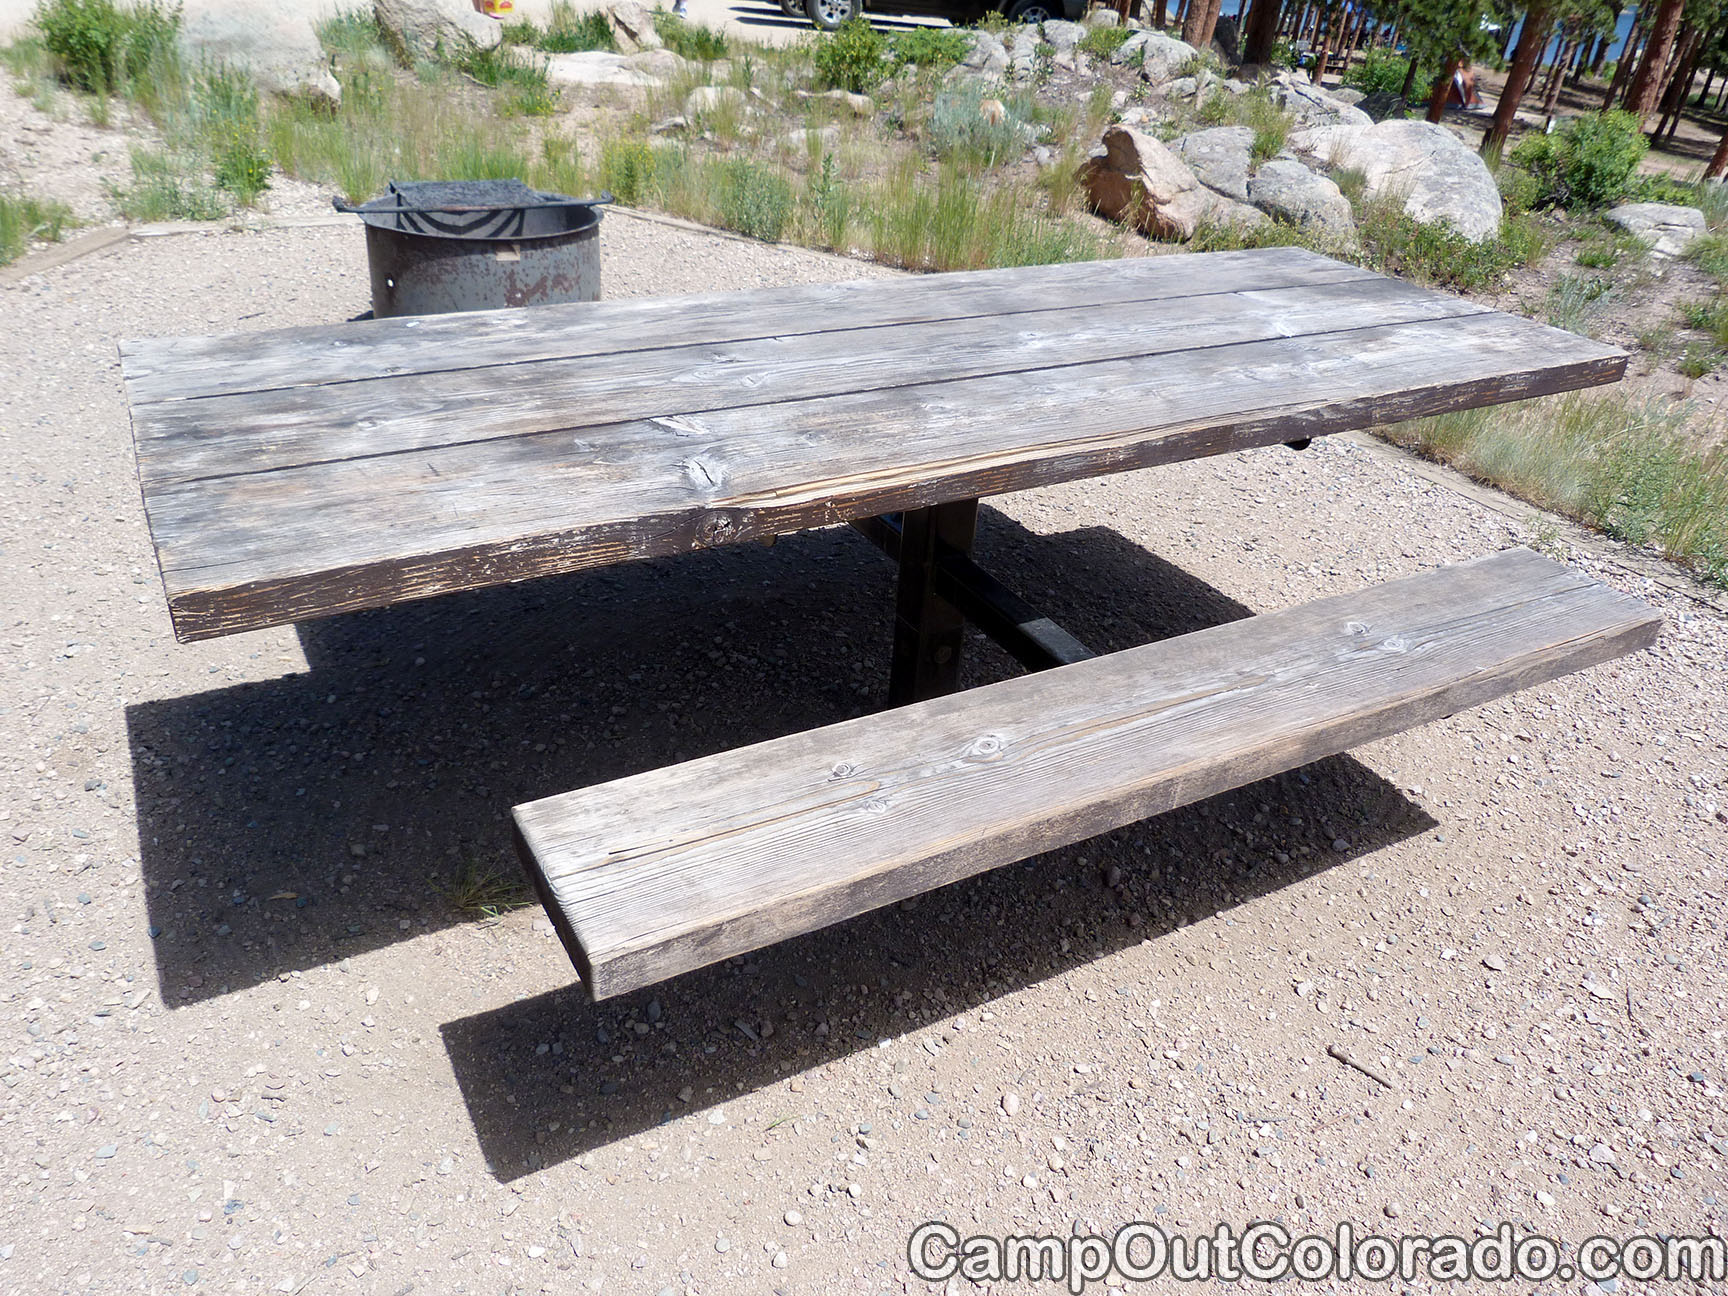 Campoutcolorado-dowdy-lake-campground-wood-table